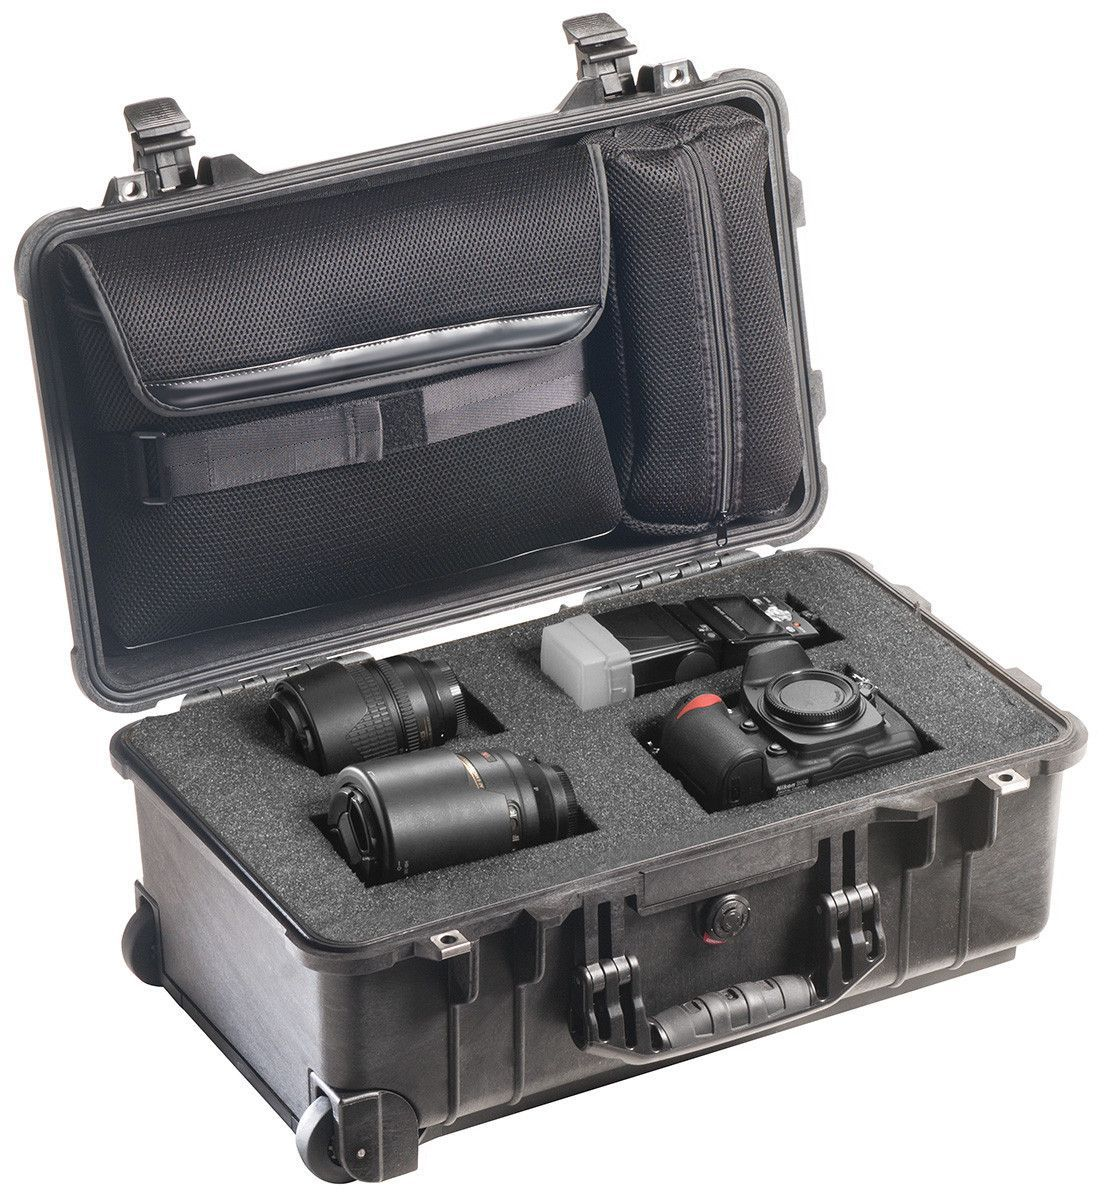 Pelican Storm™ iM3220 Case Six Press & Pull Latches Two